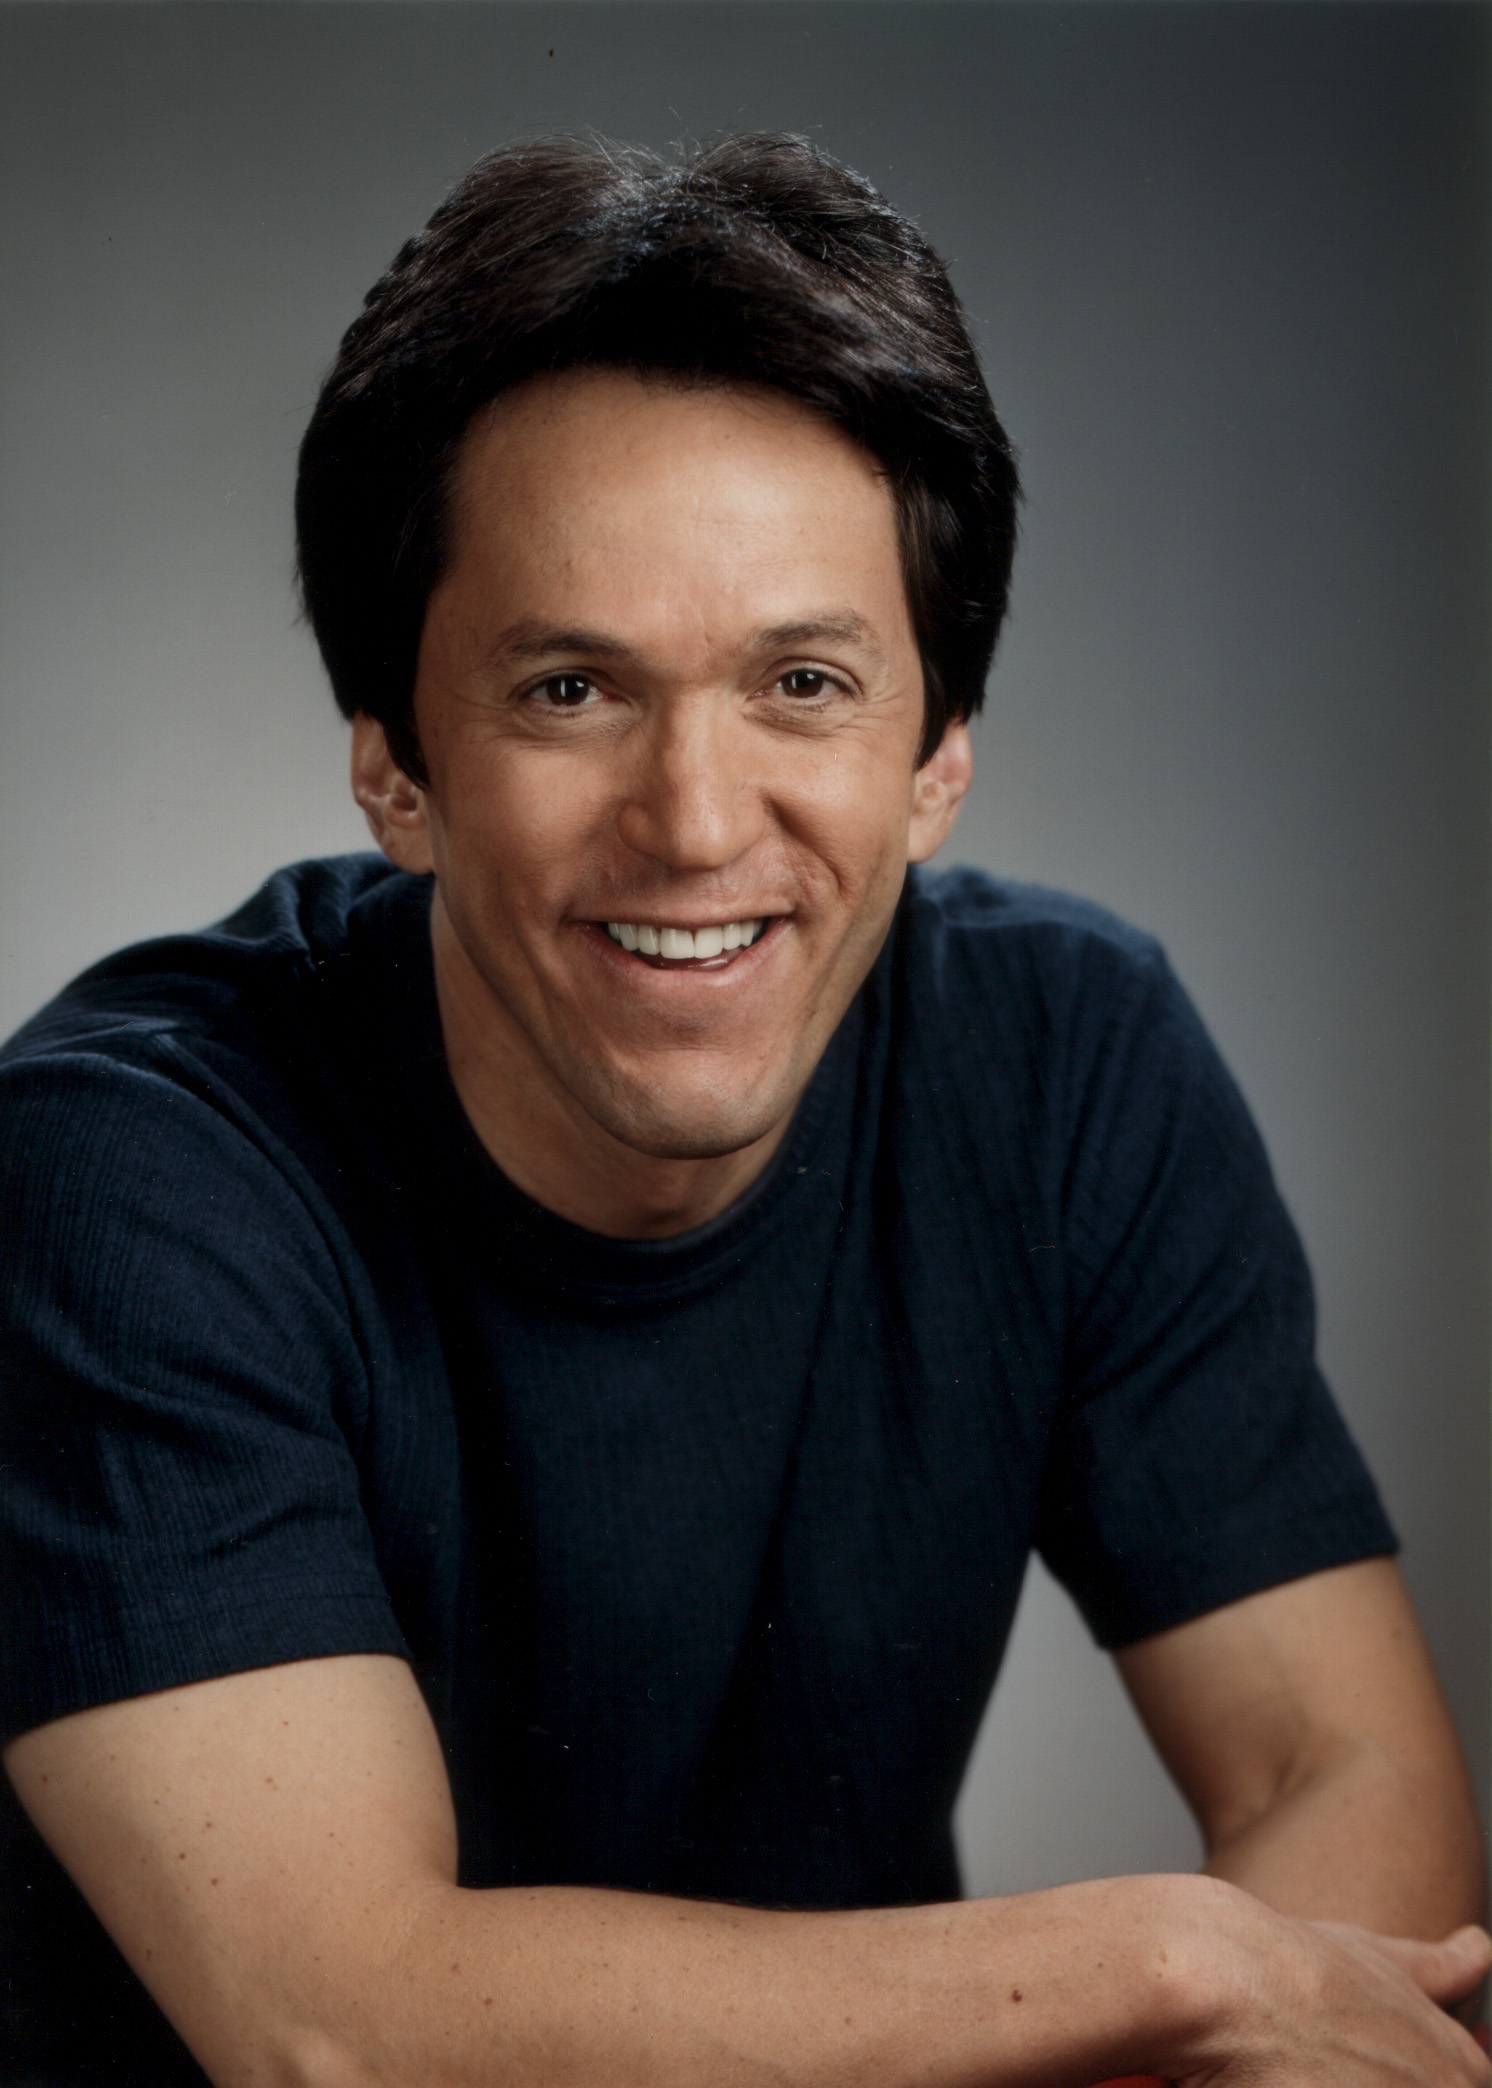 Mitch Albom, celebrated author of Tuesdays with Morrie and The Five People You Meet in Heaven, will deliver the university's general commencement address on Friday, May 6, 2011.